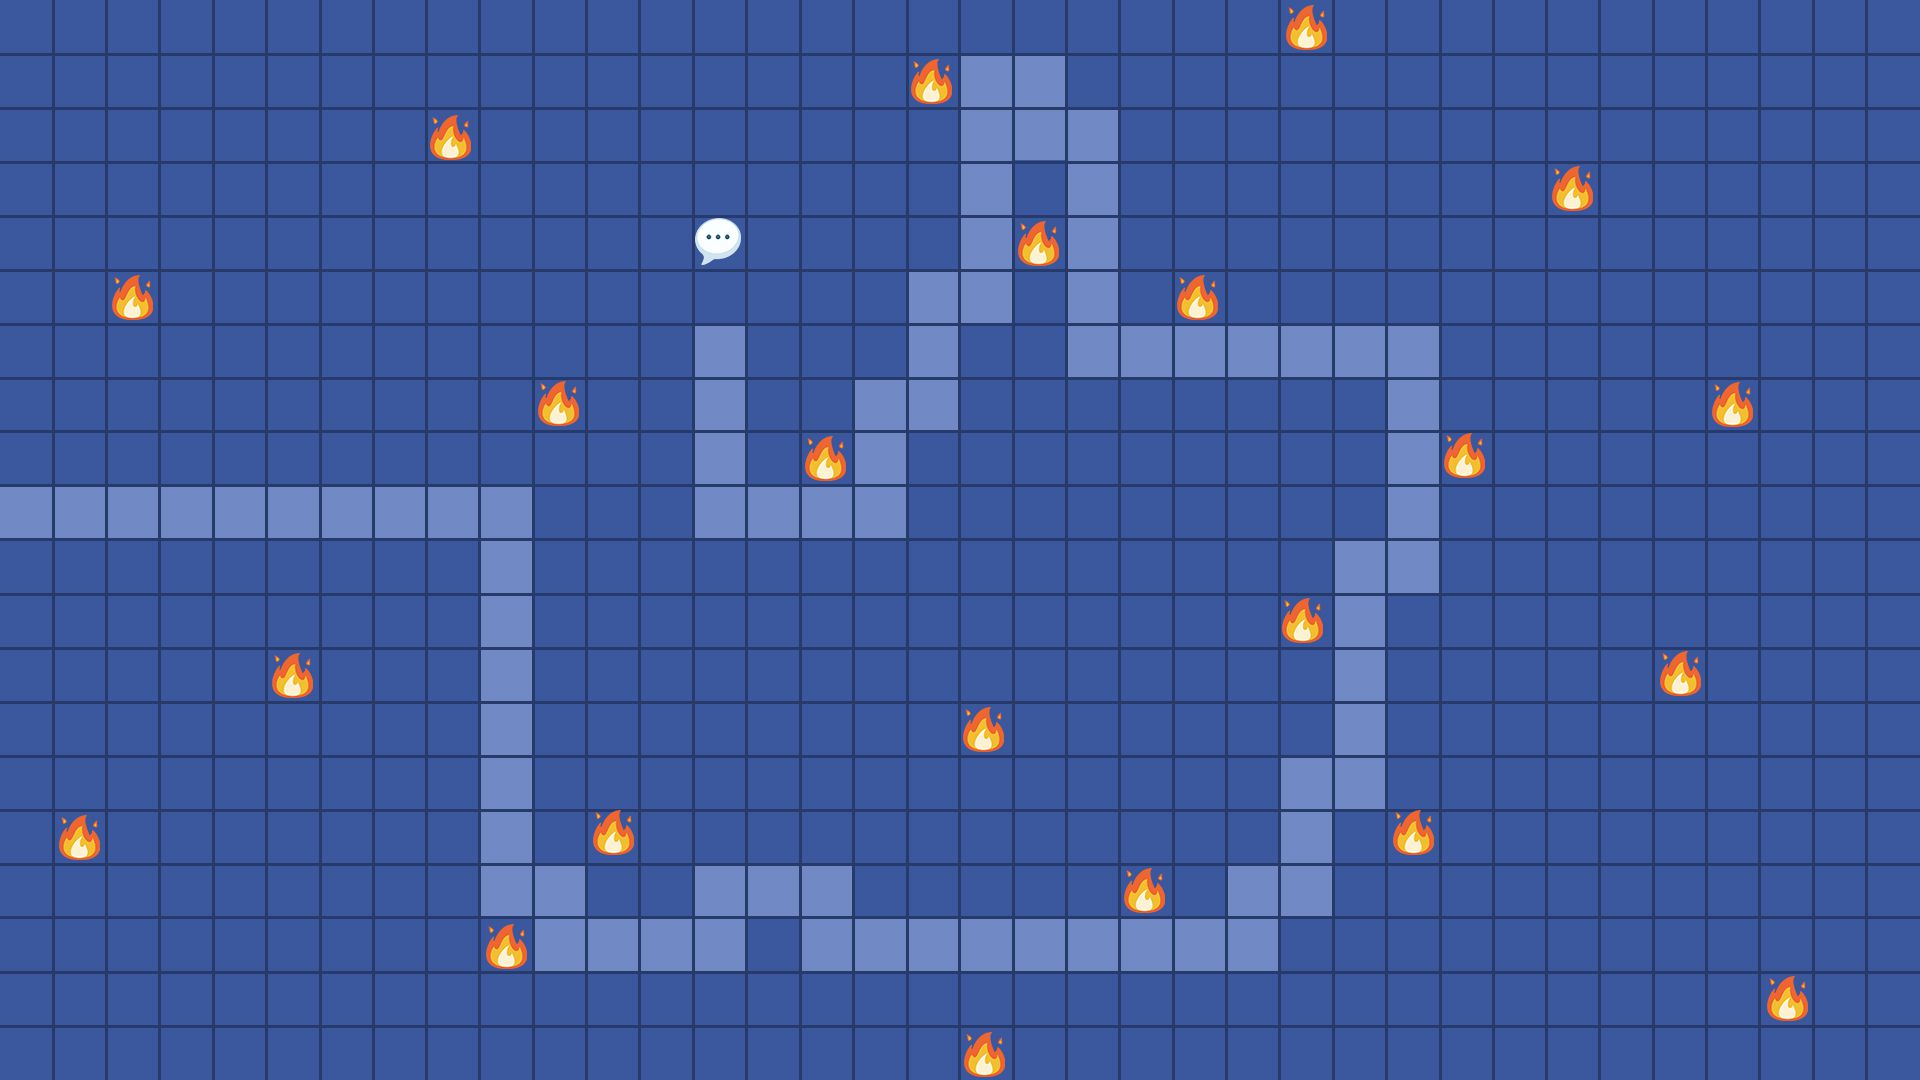 Facebook logo in a minefield, like the PC game minesweeper